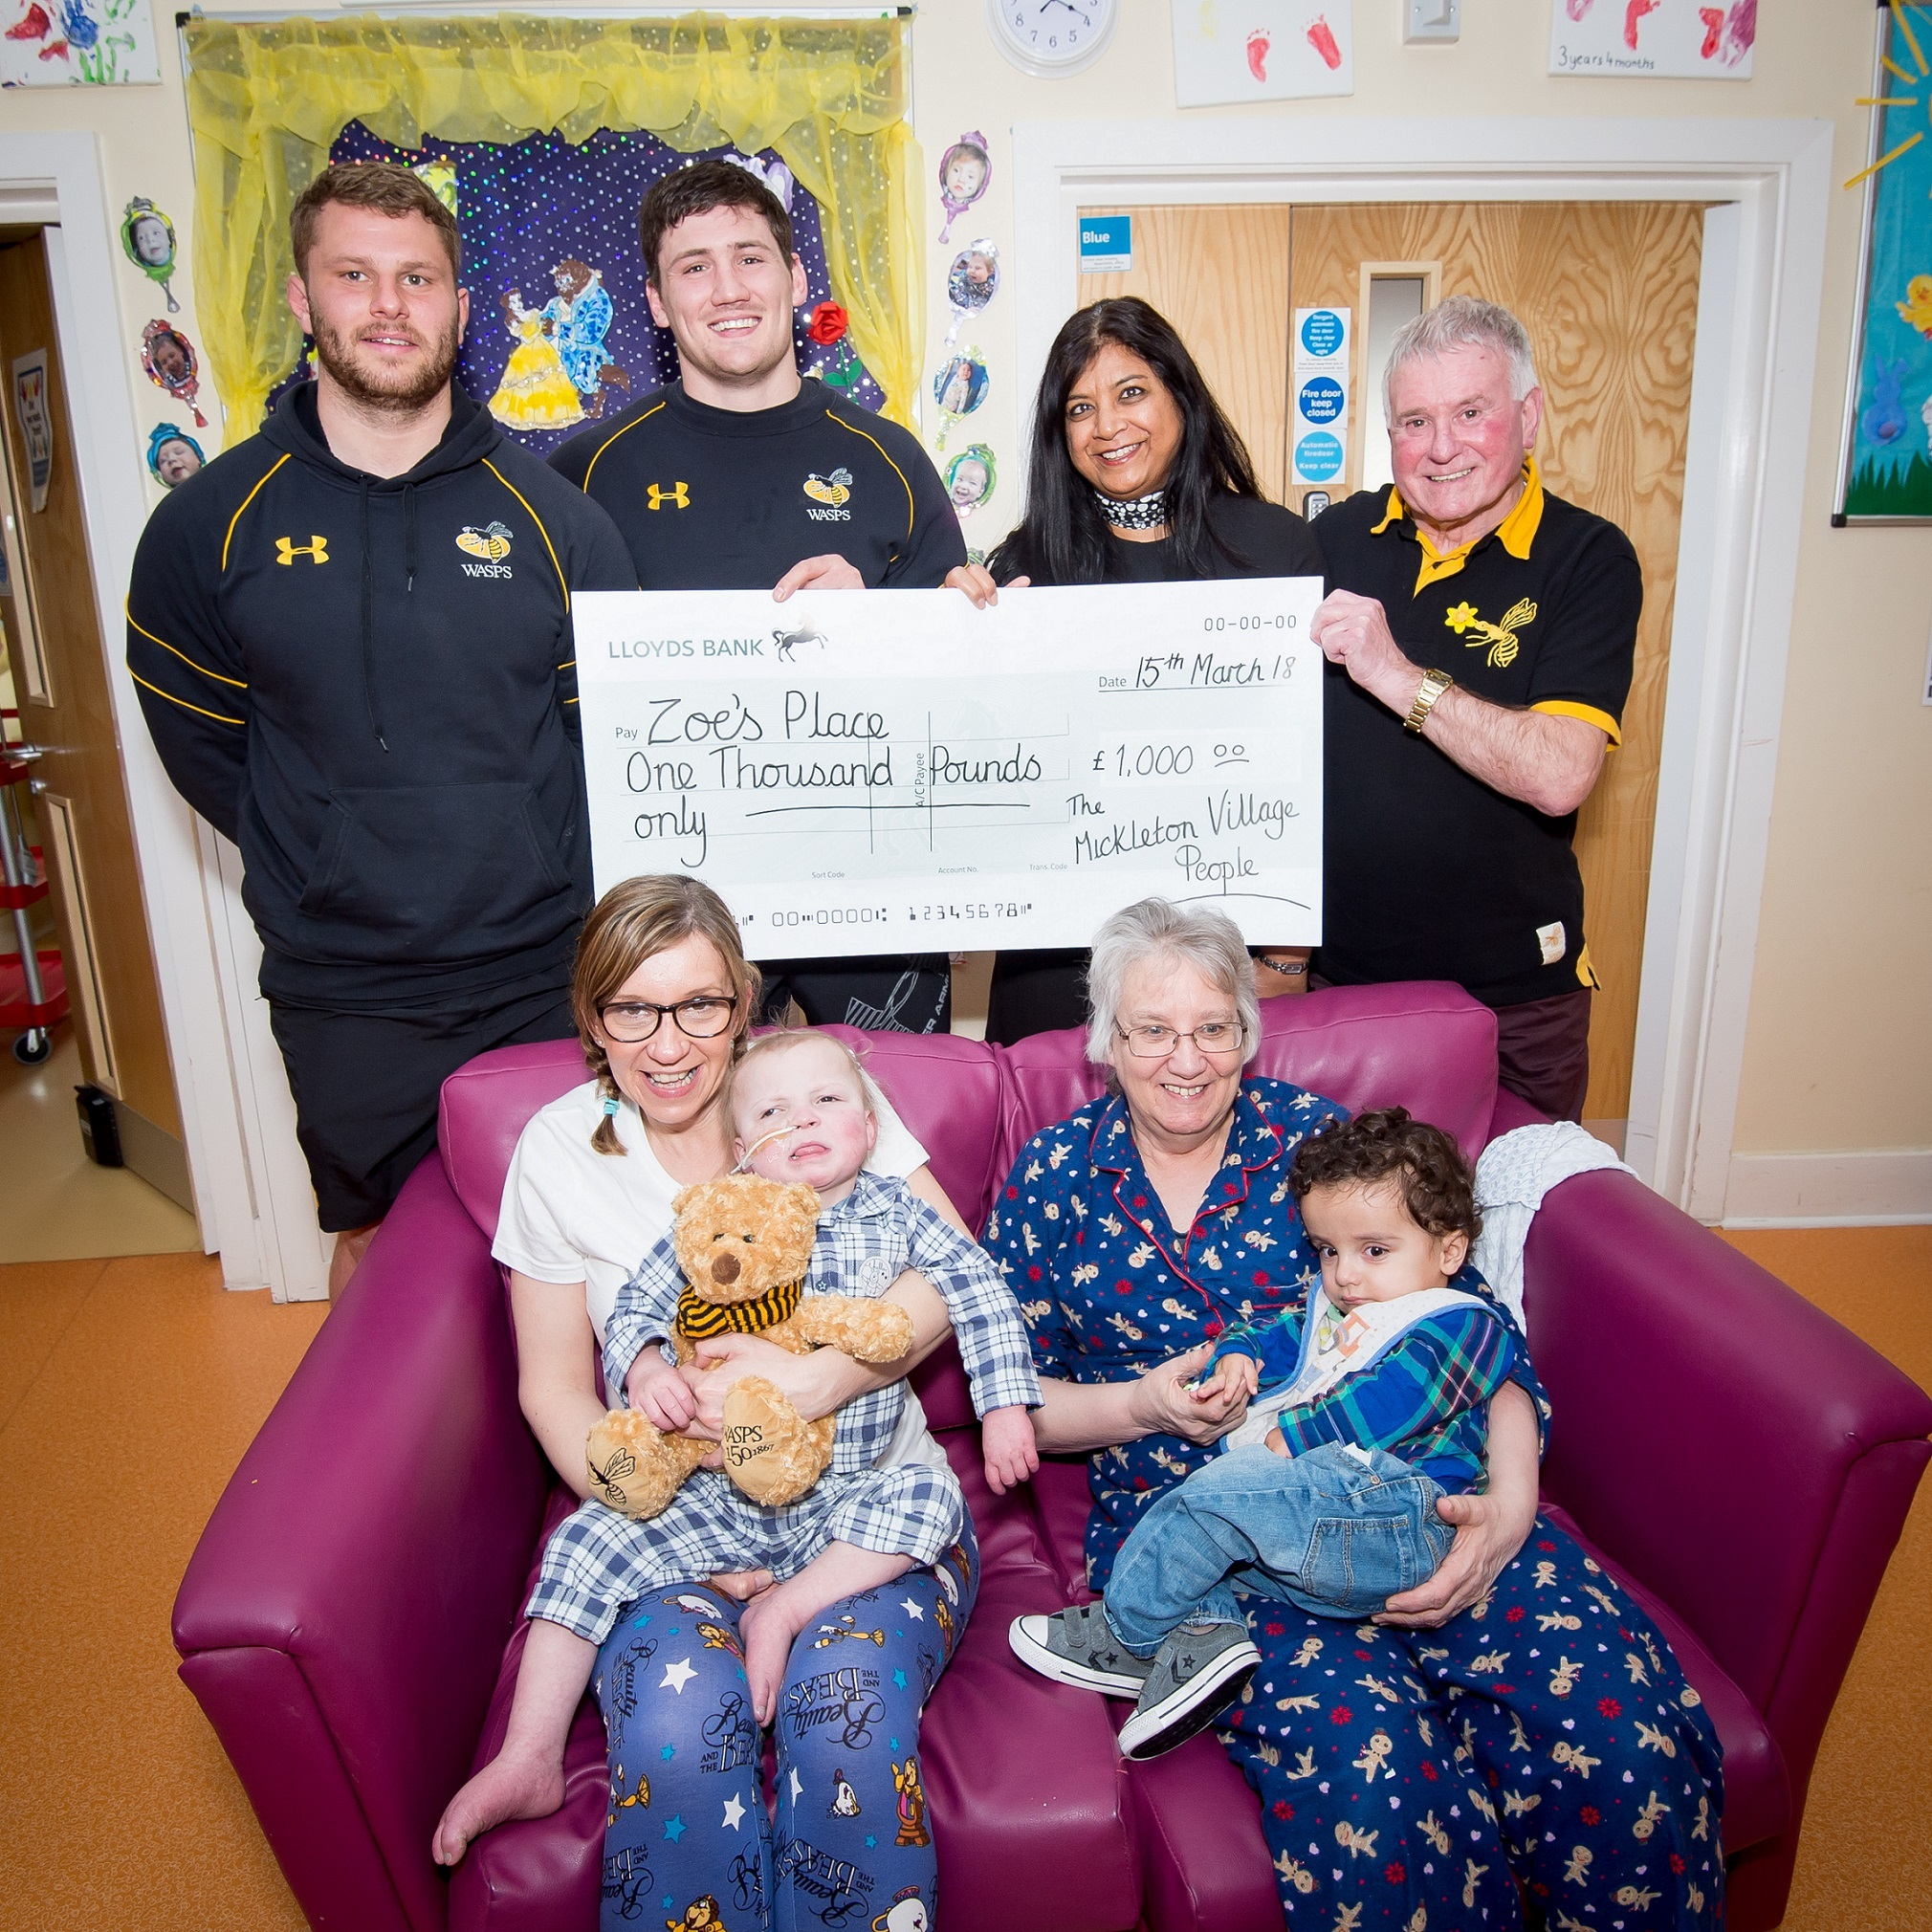 FUNDRAISER: From left, Wasps first team players Thomas Young and Guy Thompson with Muna Chauhan and David Gilbert